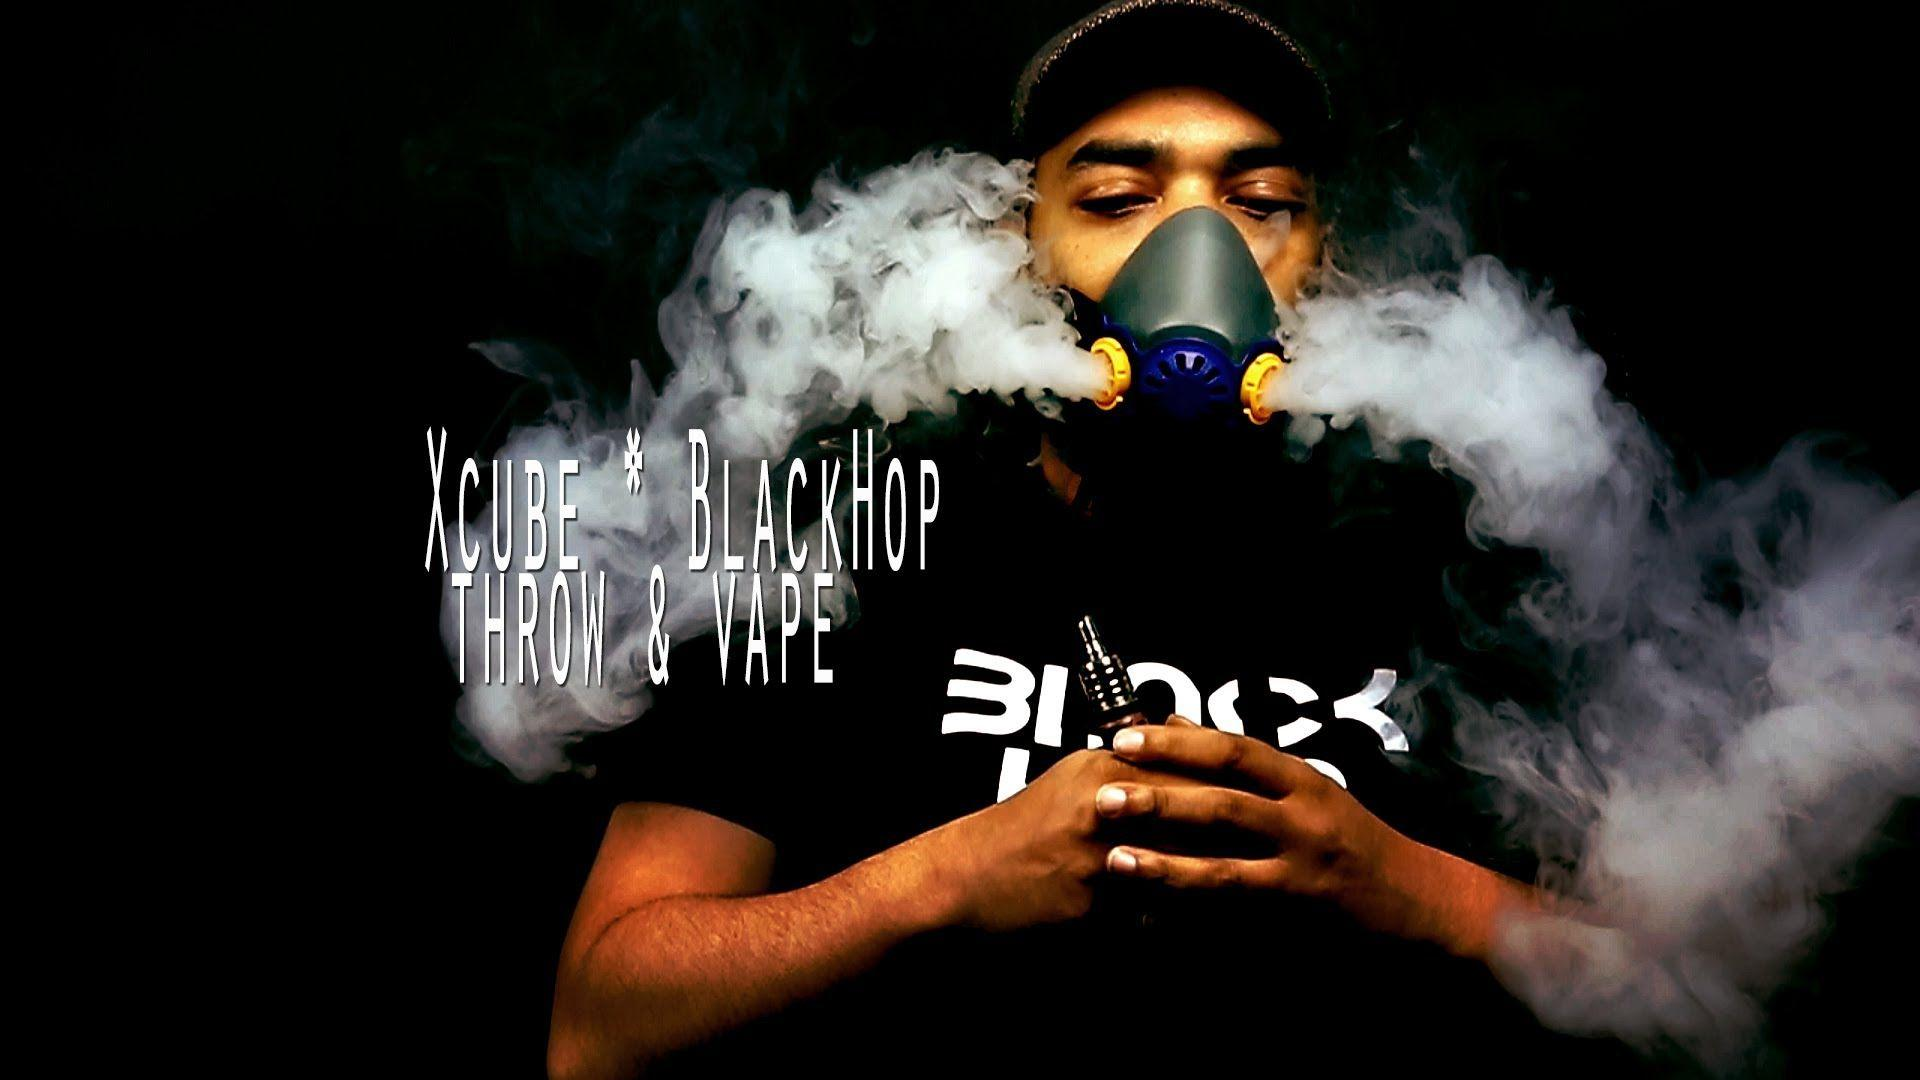 Only Vape Wallpapers Hd 1920x1080